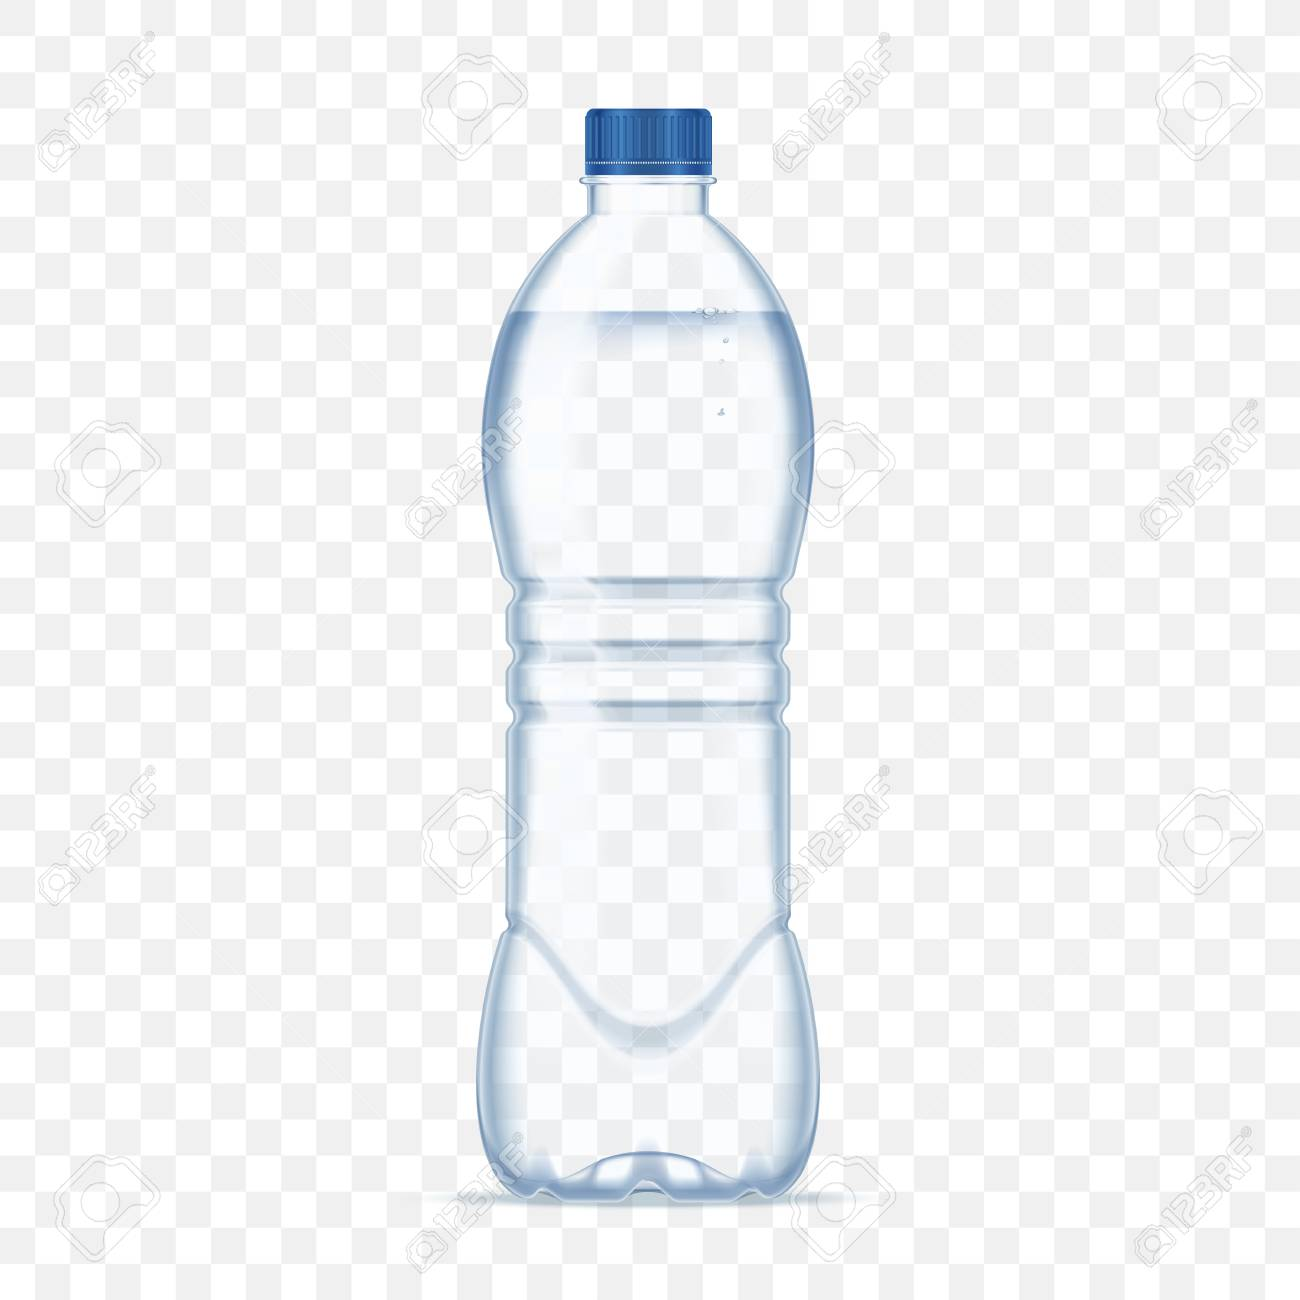 Plastic Bottle With Mineral Water Alpha Transparent Background